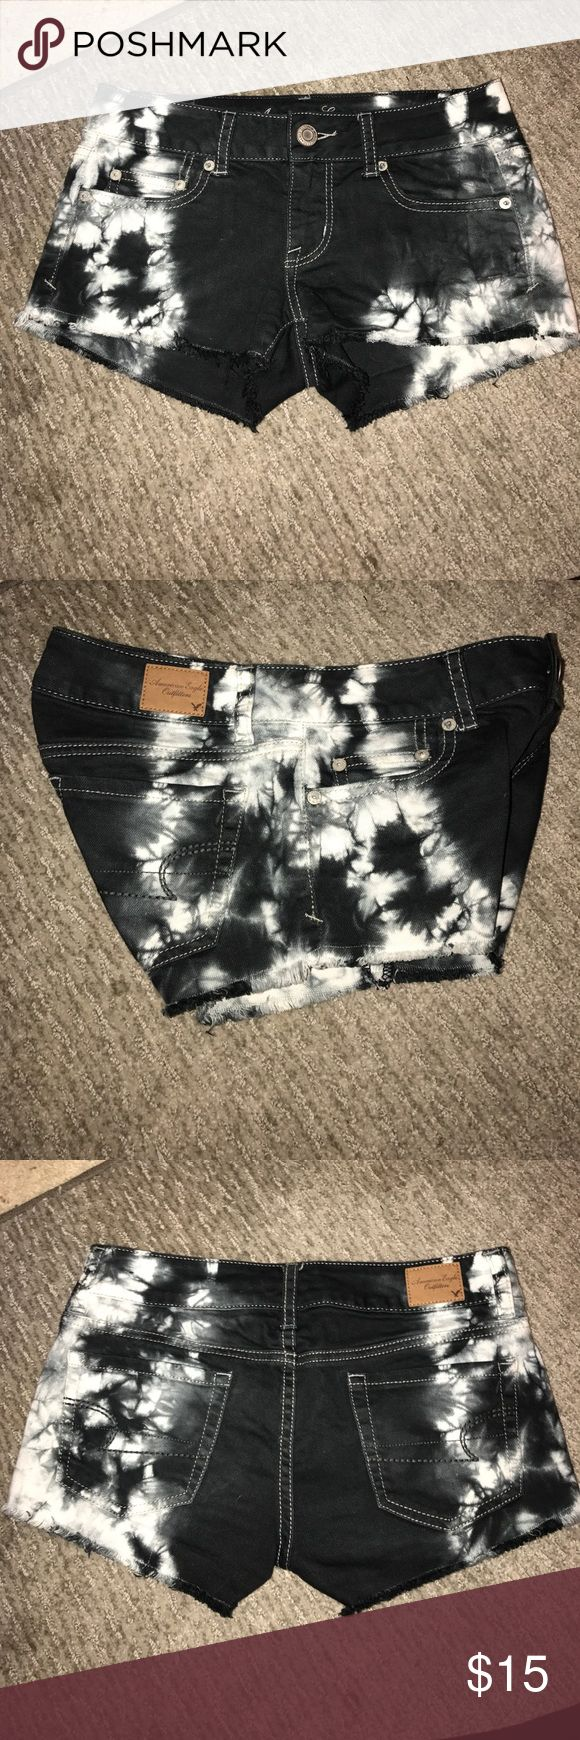 American Eagle Tie Dye Shorts Great condition, only worn once. 98% Cotton, 2% Spandex American Eagle Outfitters Shorts Jean Shorts